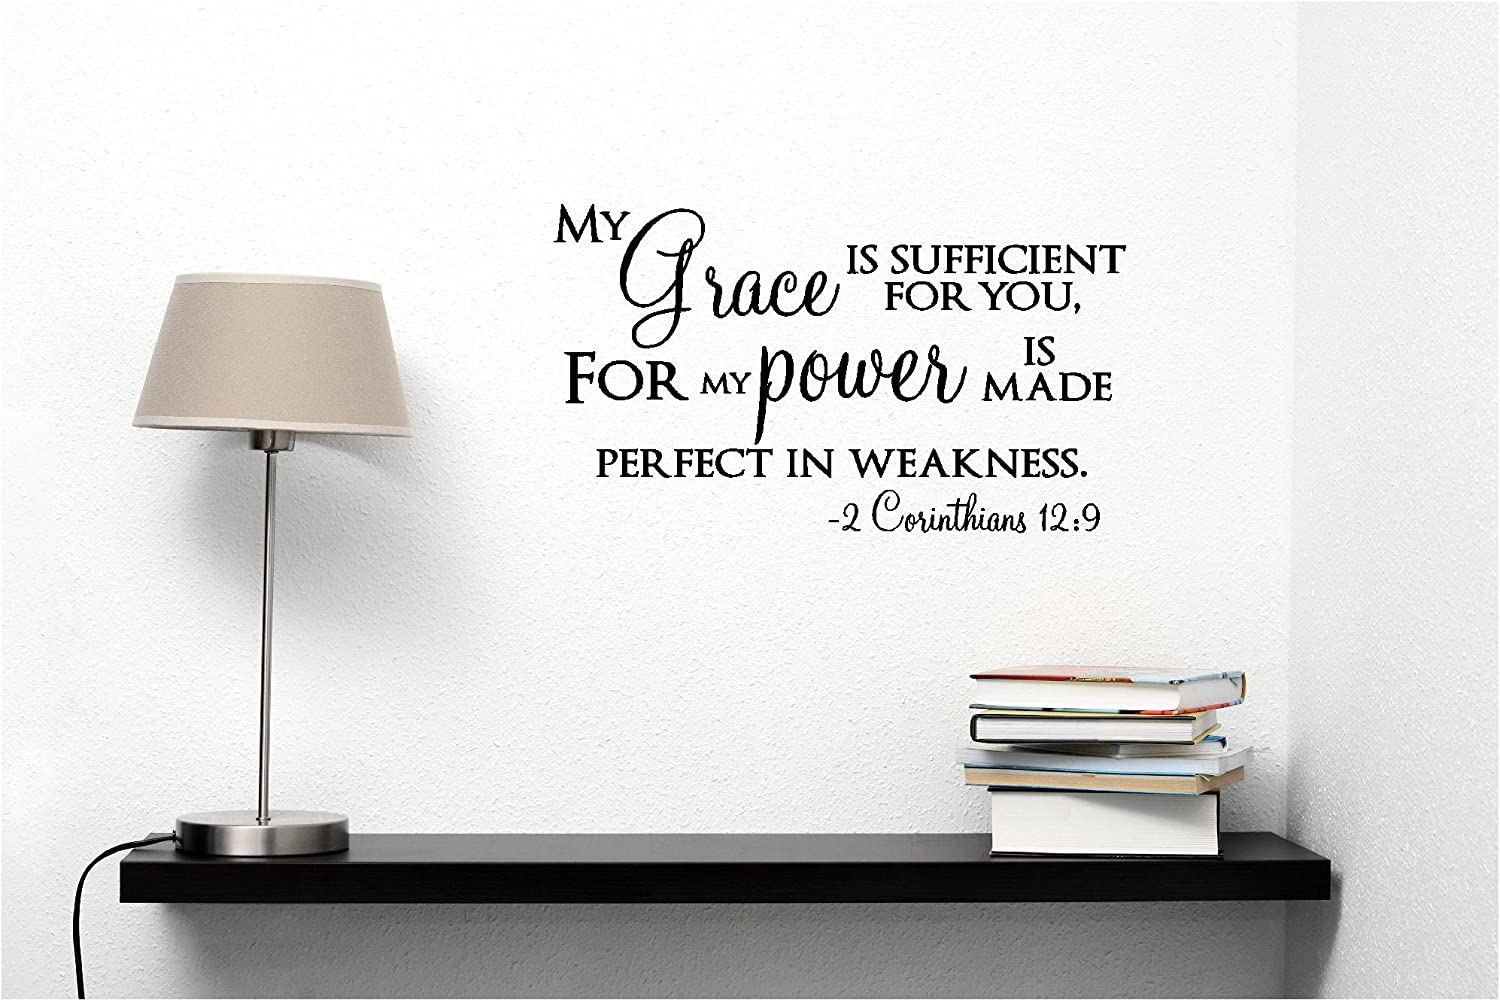 My Grace is Sufficient for You, for My Power is Made Perfect in Weakness 2 Corinthians 12:9 Religious Inspirational Home Vinyl Wall Decals Sayings Art Lettering